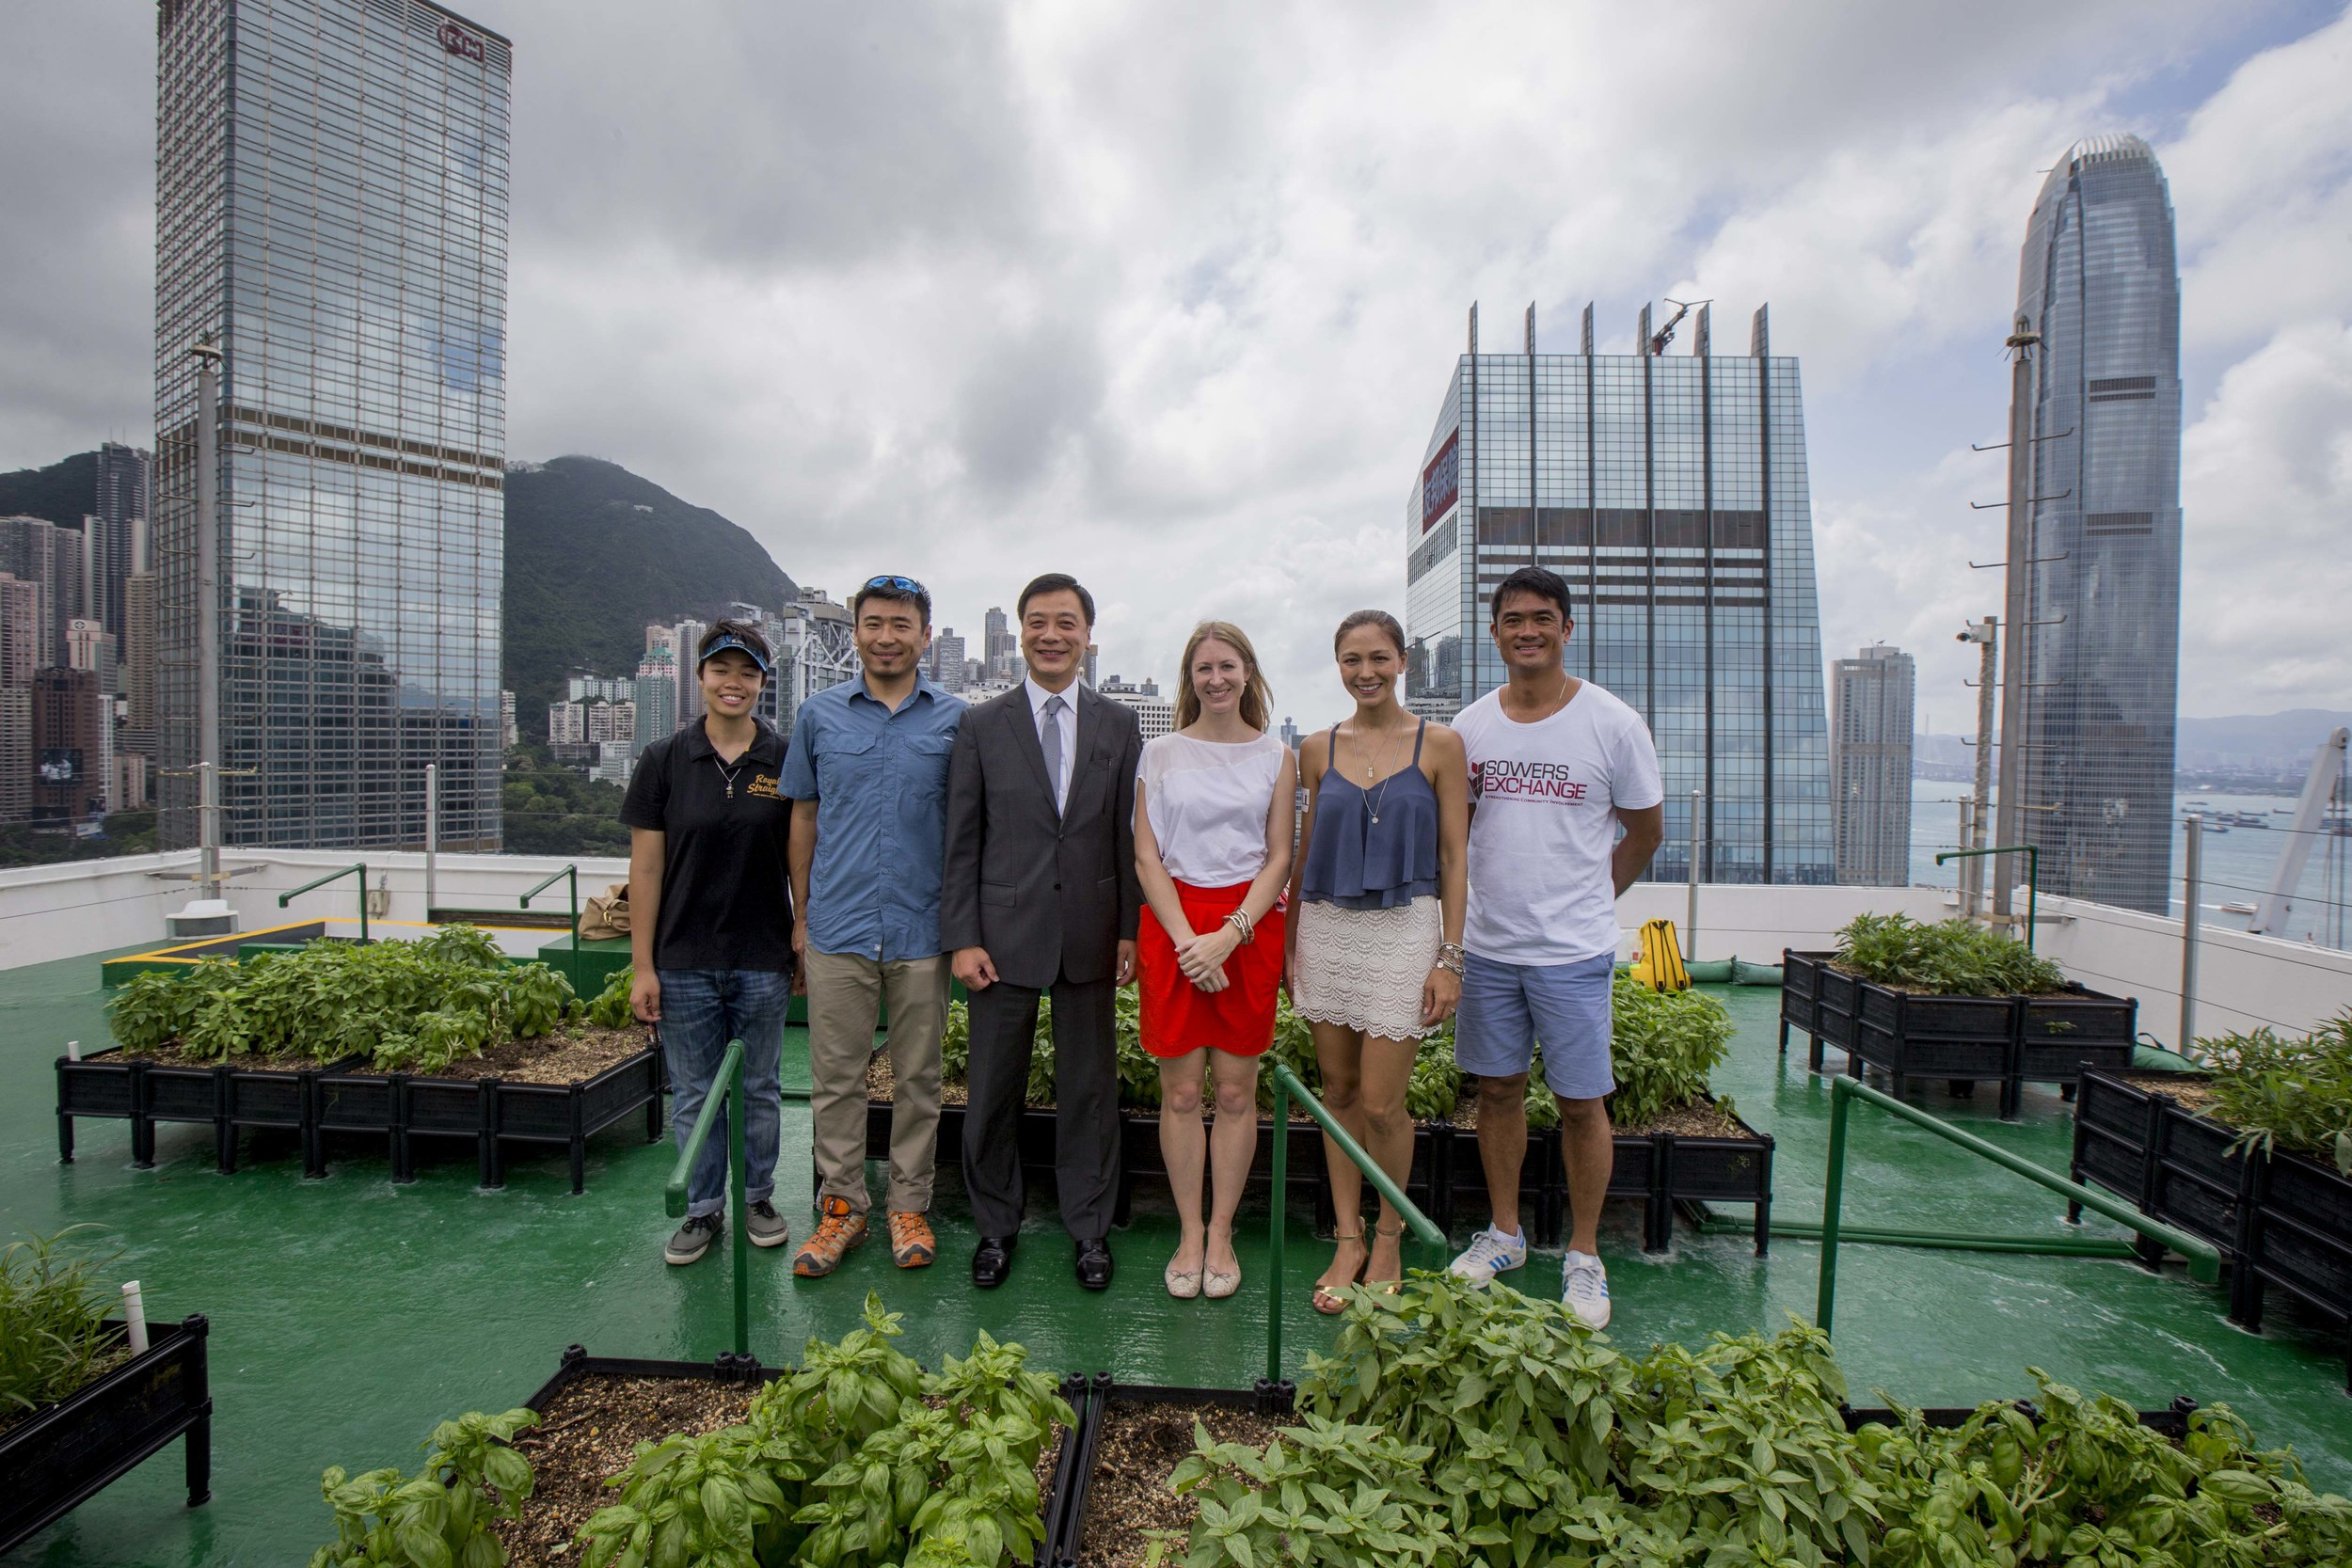 From left to right: Andrew Tsui, Co-founder of Time to Grow (second from the left); William Lai, Head of Property Management, JLL, Hong Kong (third from the left); Gabrielle Kirstein, Managing Director, Feeding Hong Kong (third from the right); Cara G, Ambassador of JLL's Urban Farm (second from the right); Bobby Tse, Managing Director, Sowers Exchange (far right)